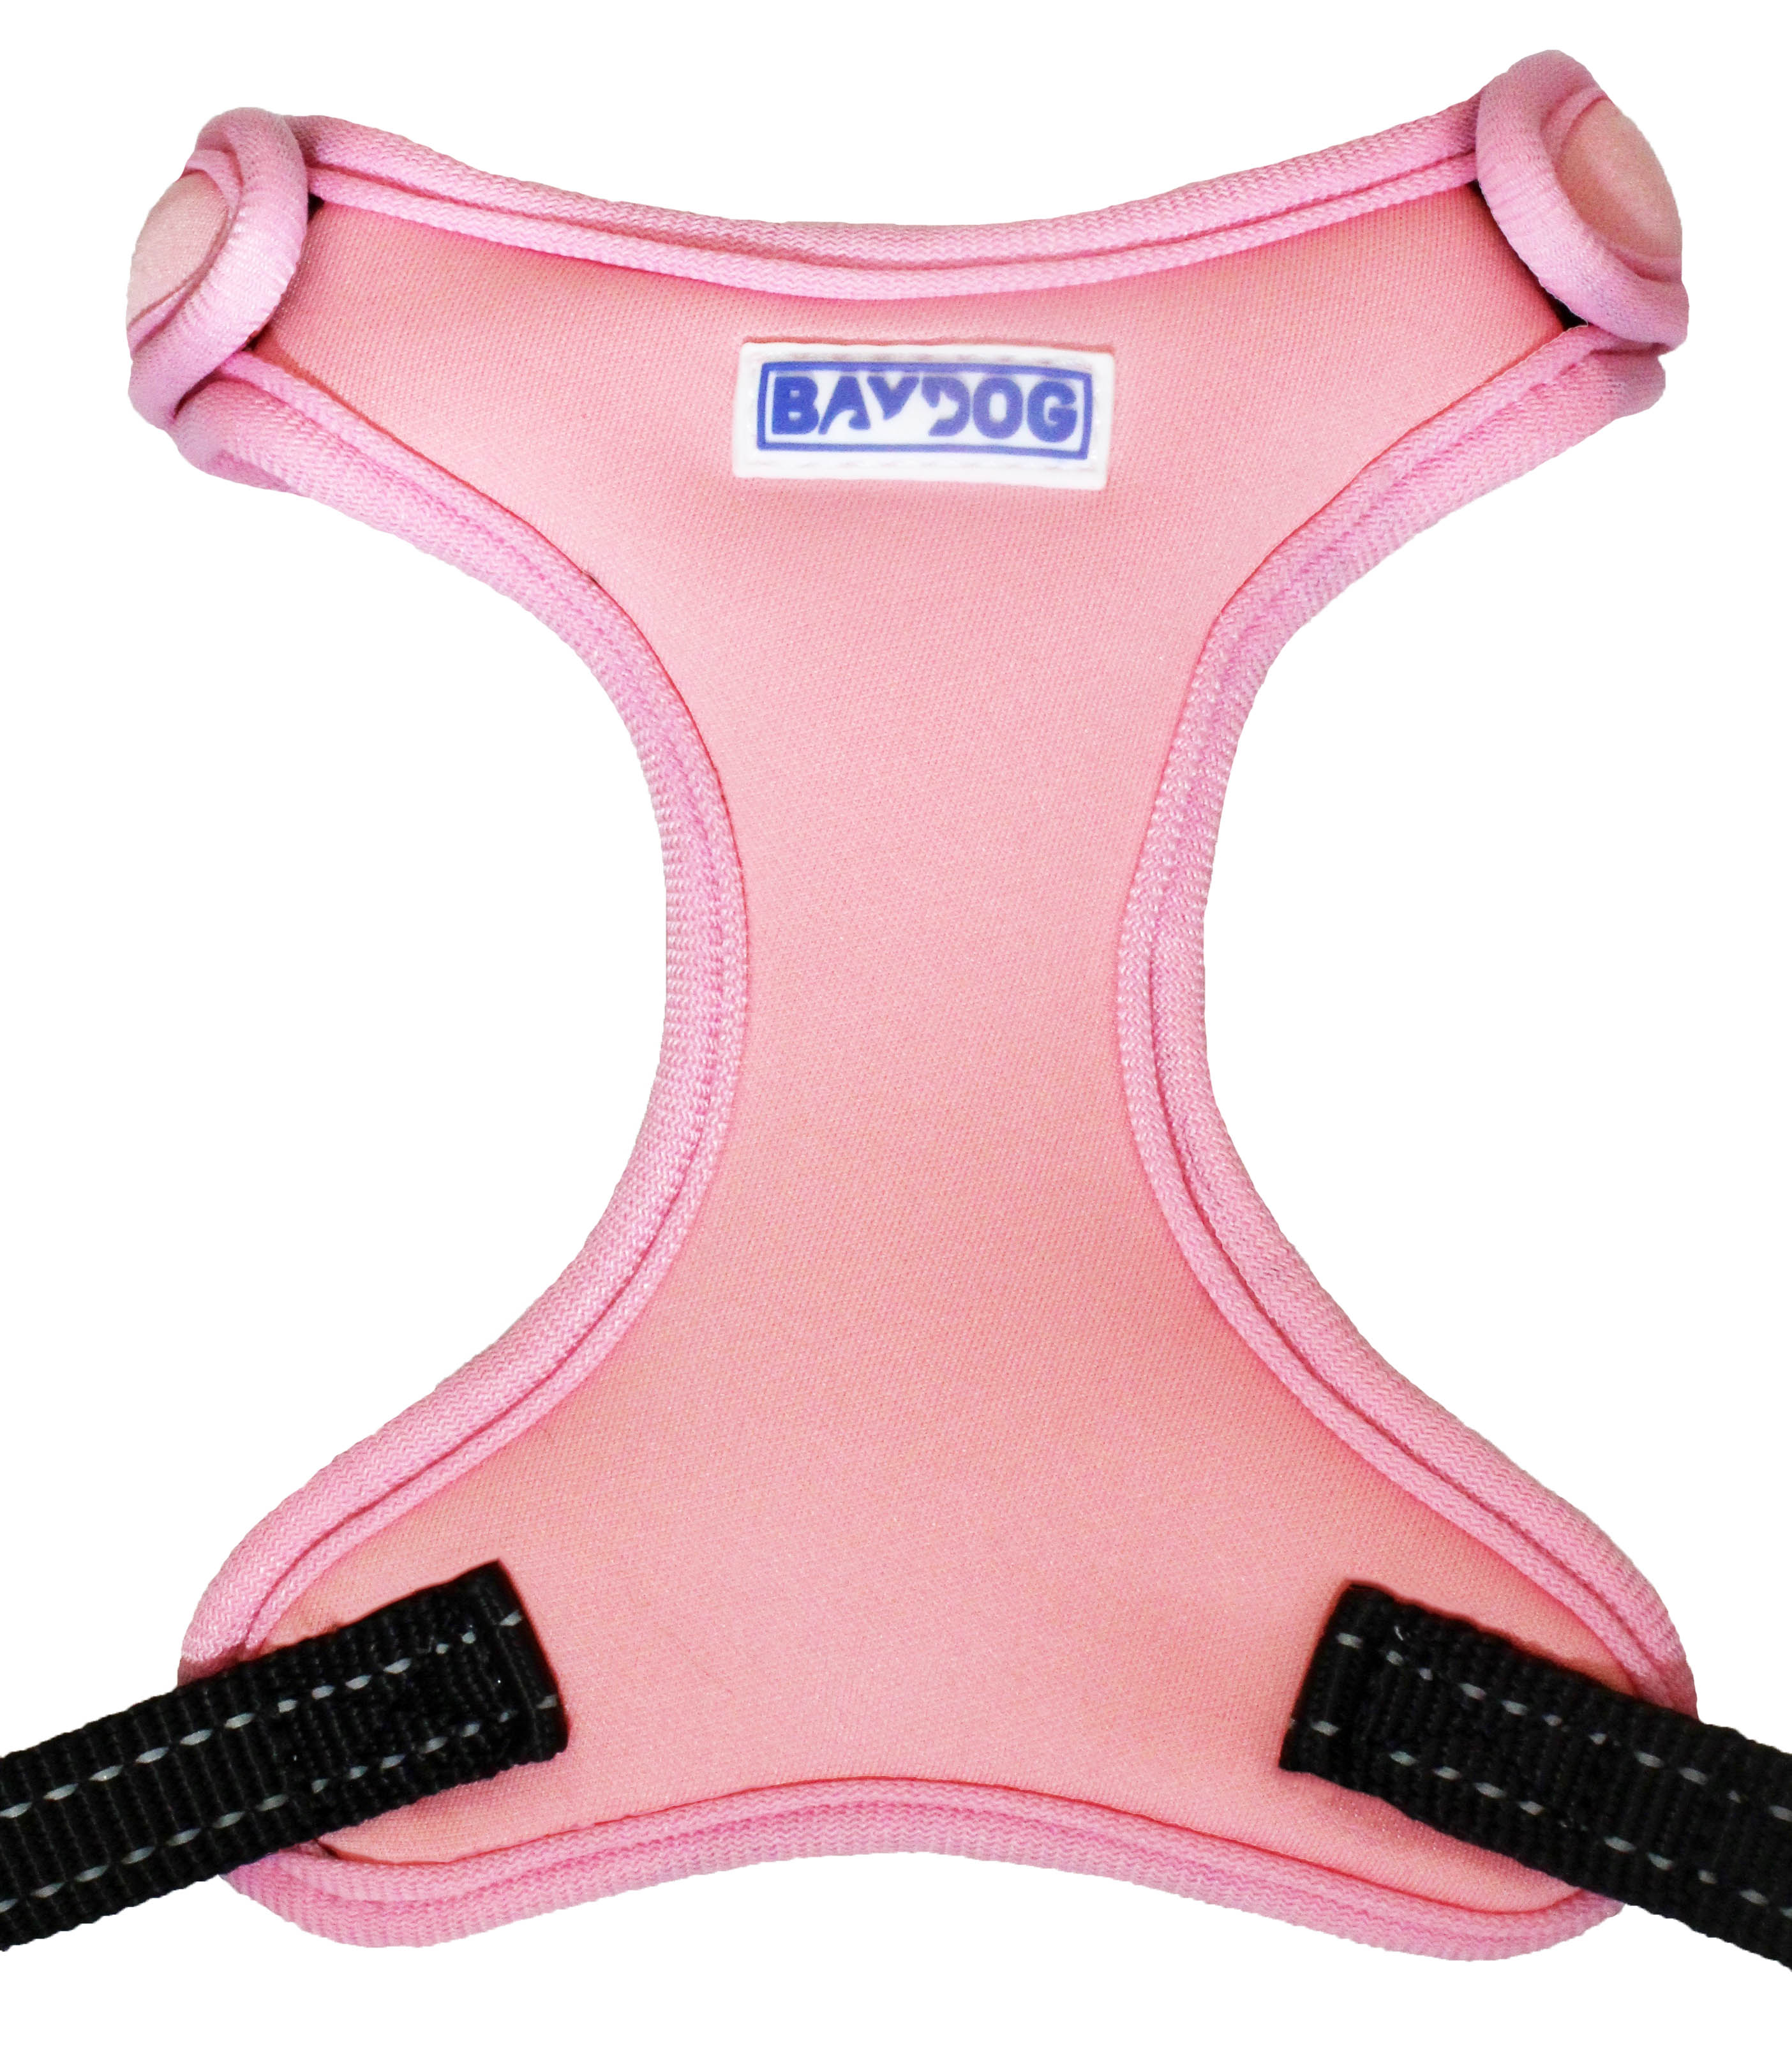 BayDog Cape Cod Harness for Dogs, Pink, Large